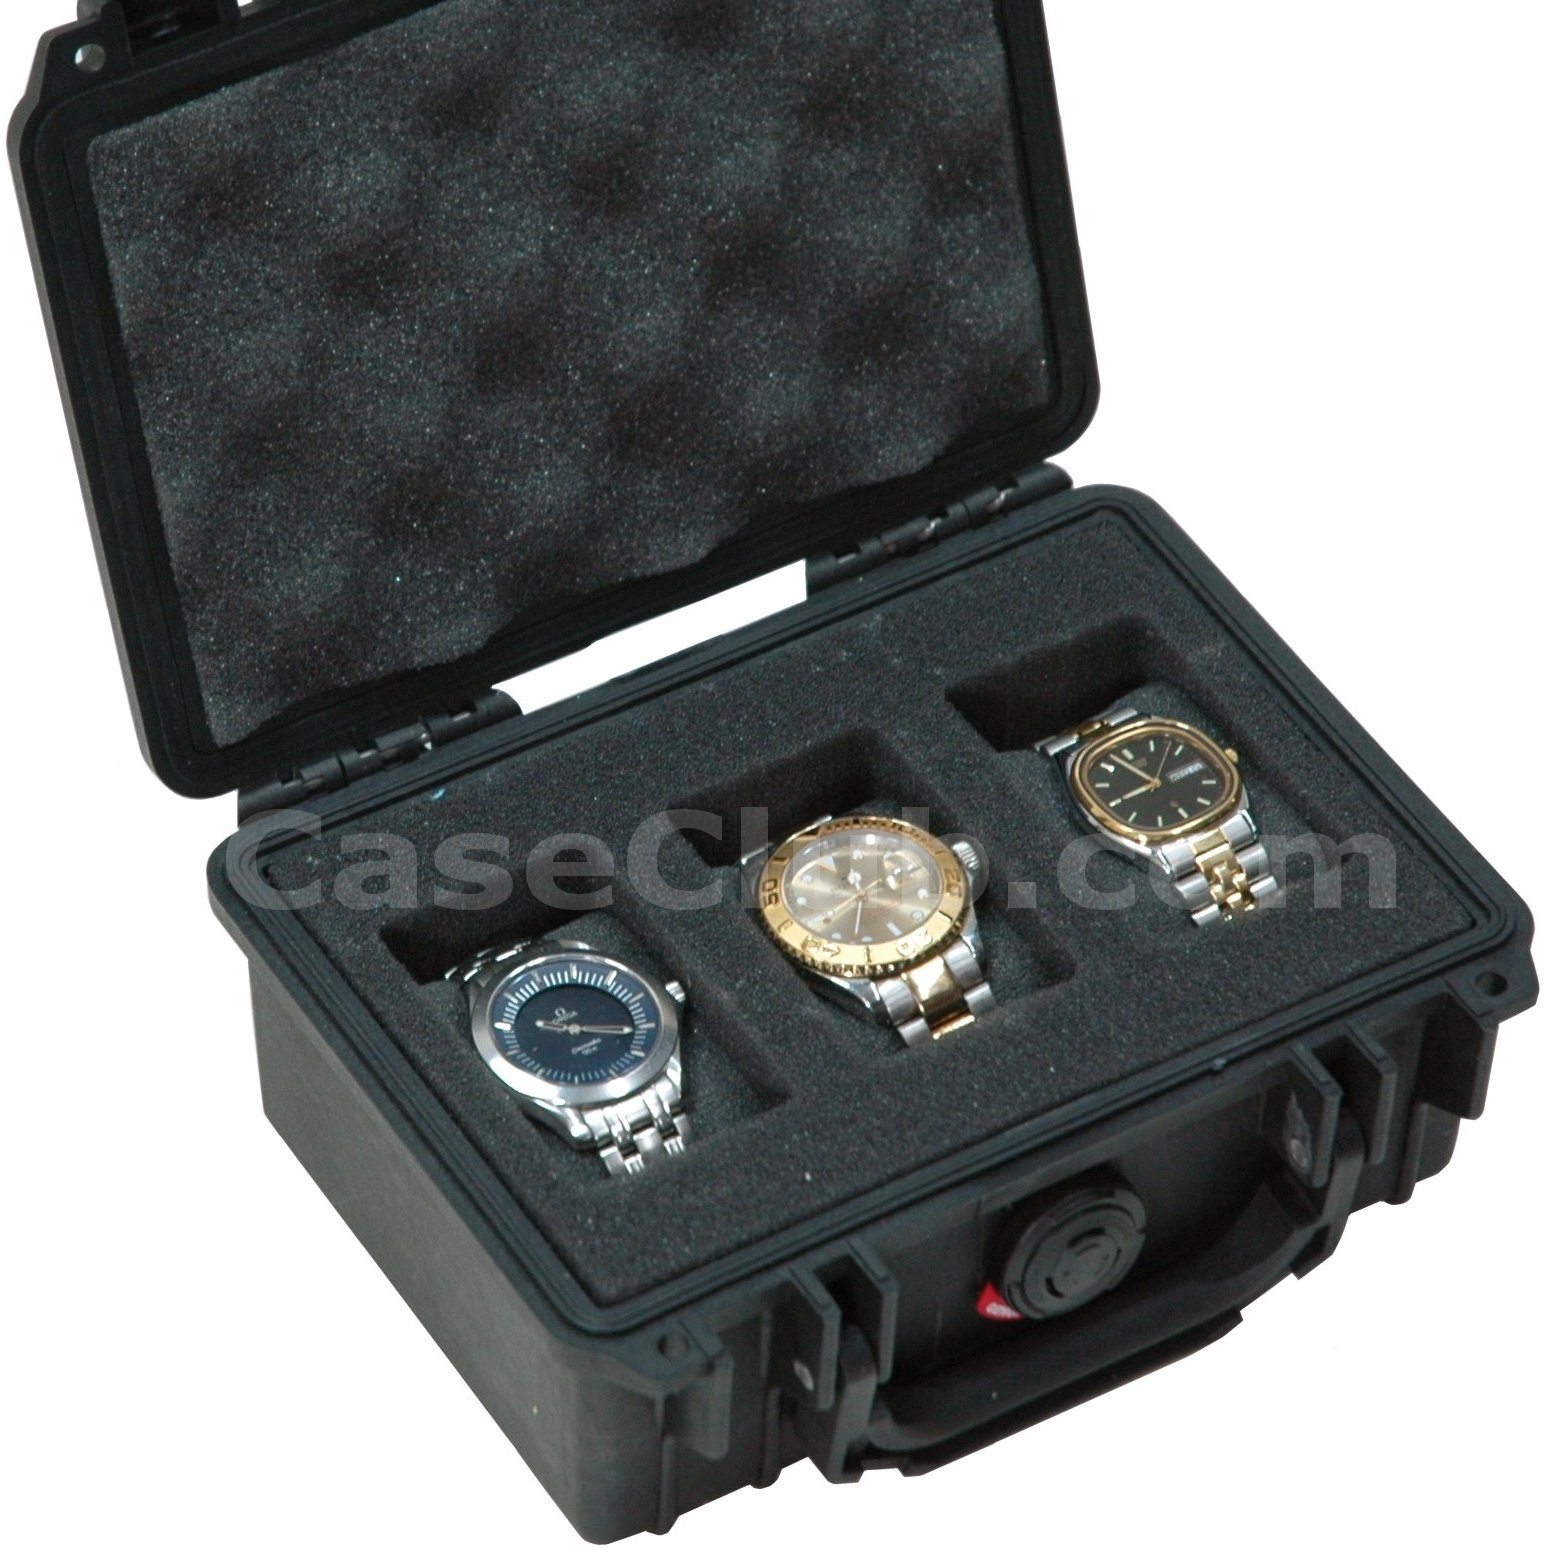 Pelican™ 1120 Case Custom Foam Example: 3 Watch Case